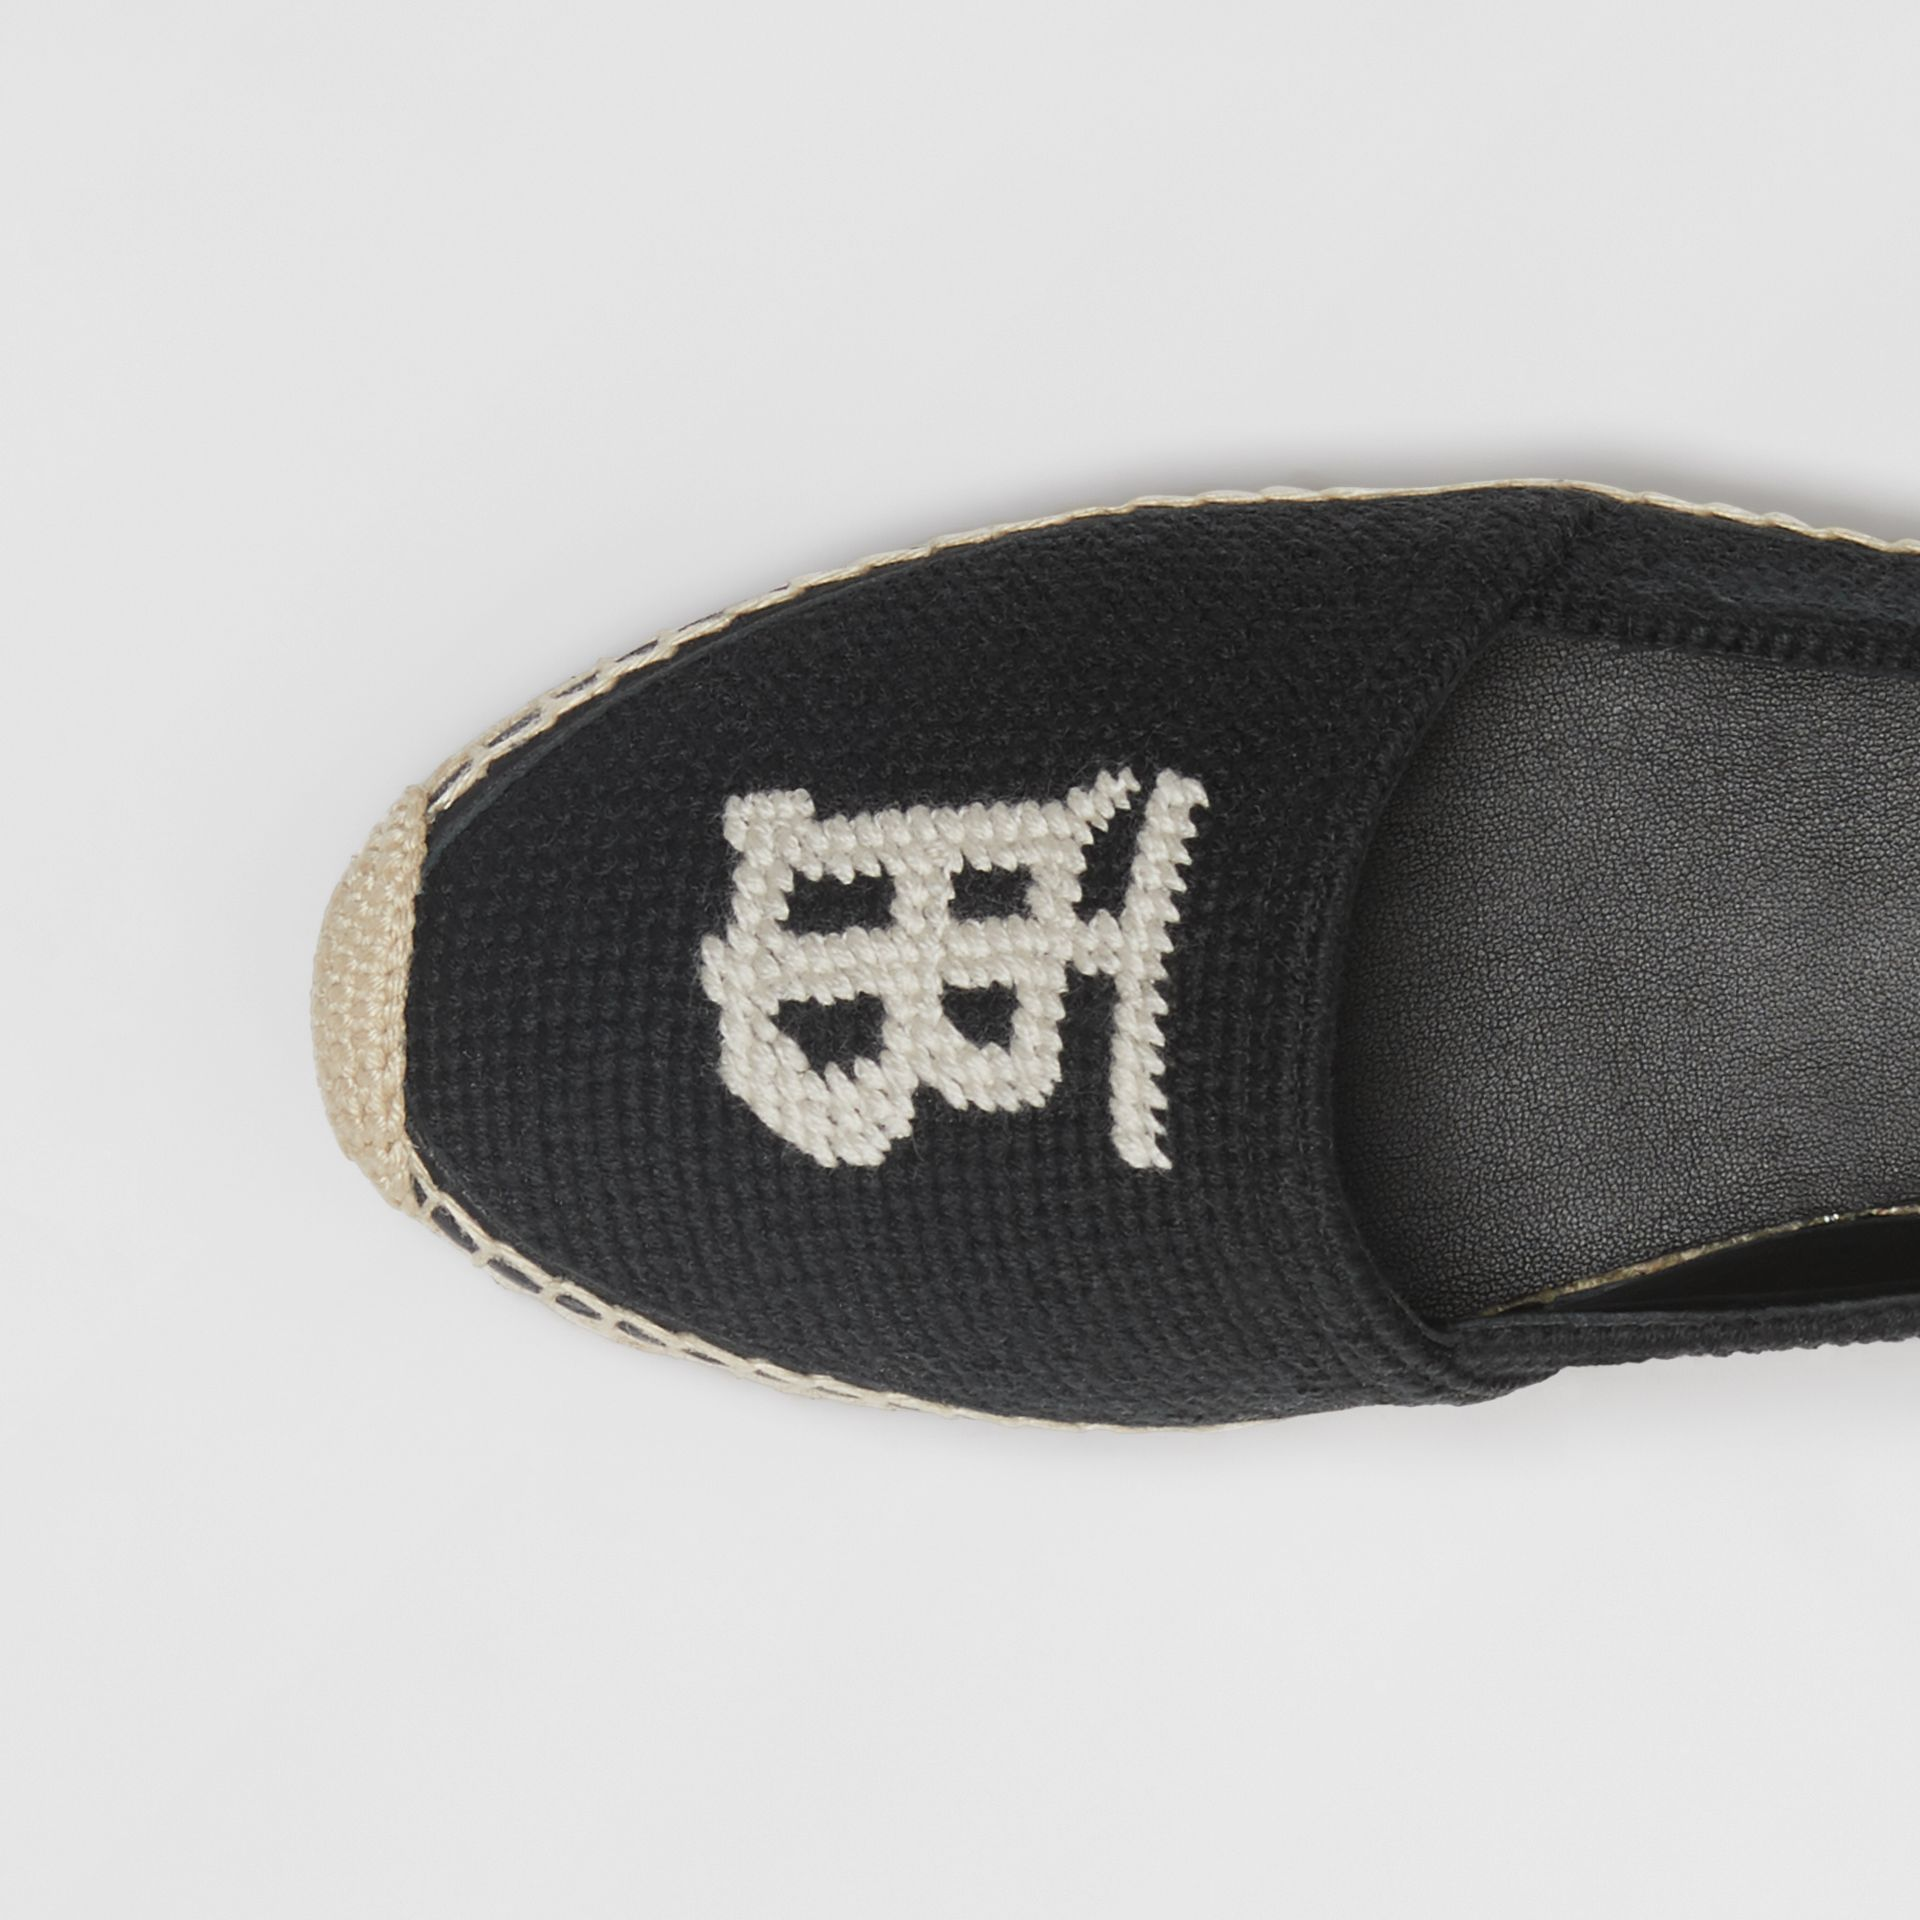 Monogram Motif Cotton and Leather Espadrilles in Black/ecru - Women | Burberry - gallery image 1